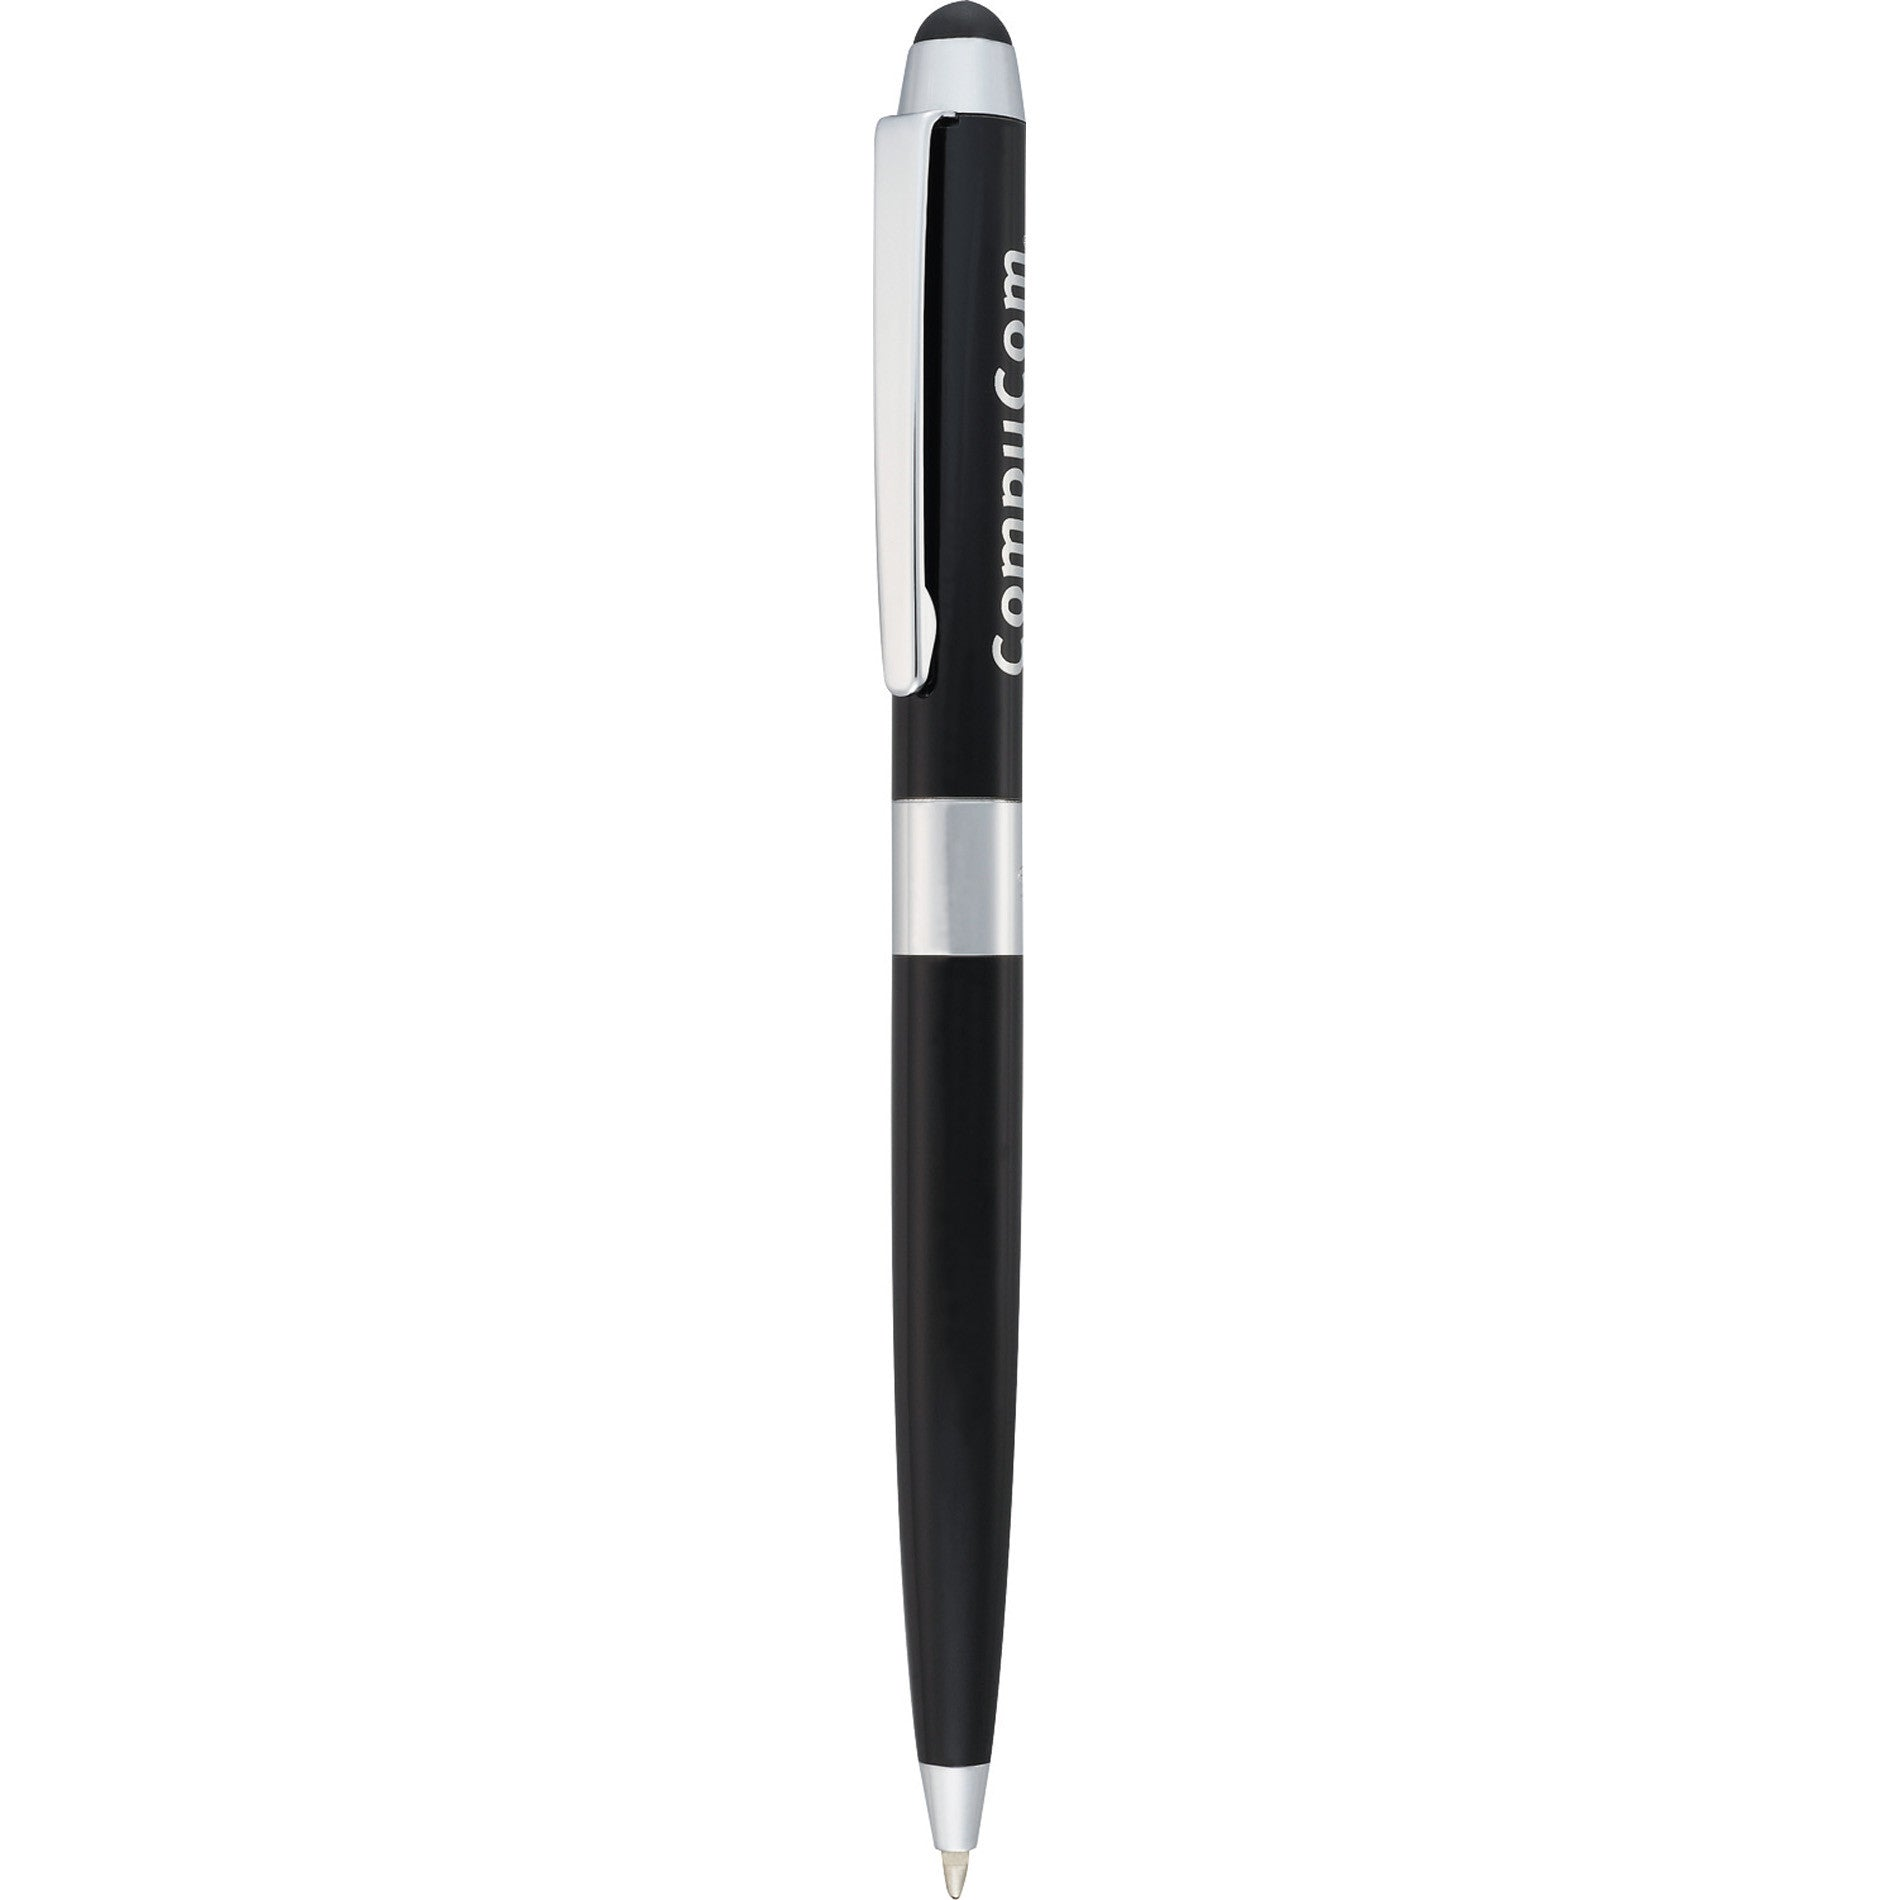 Twist Action Pen Stylus